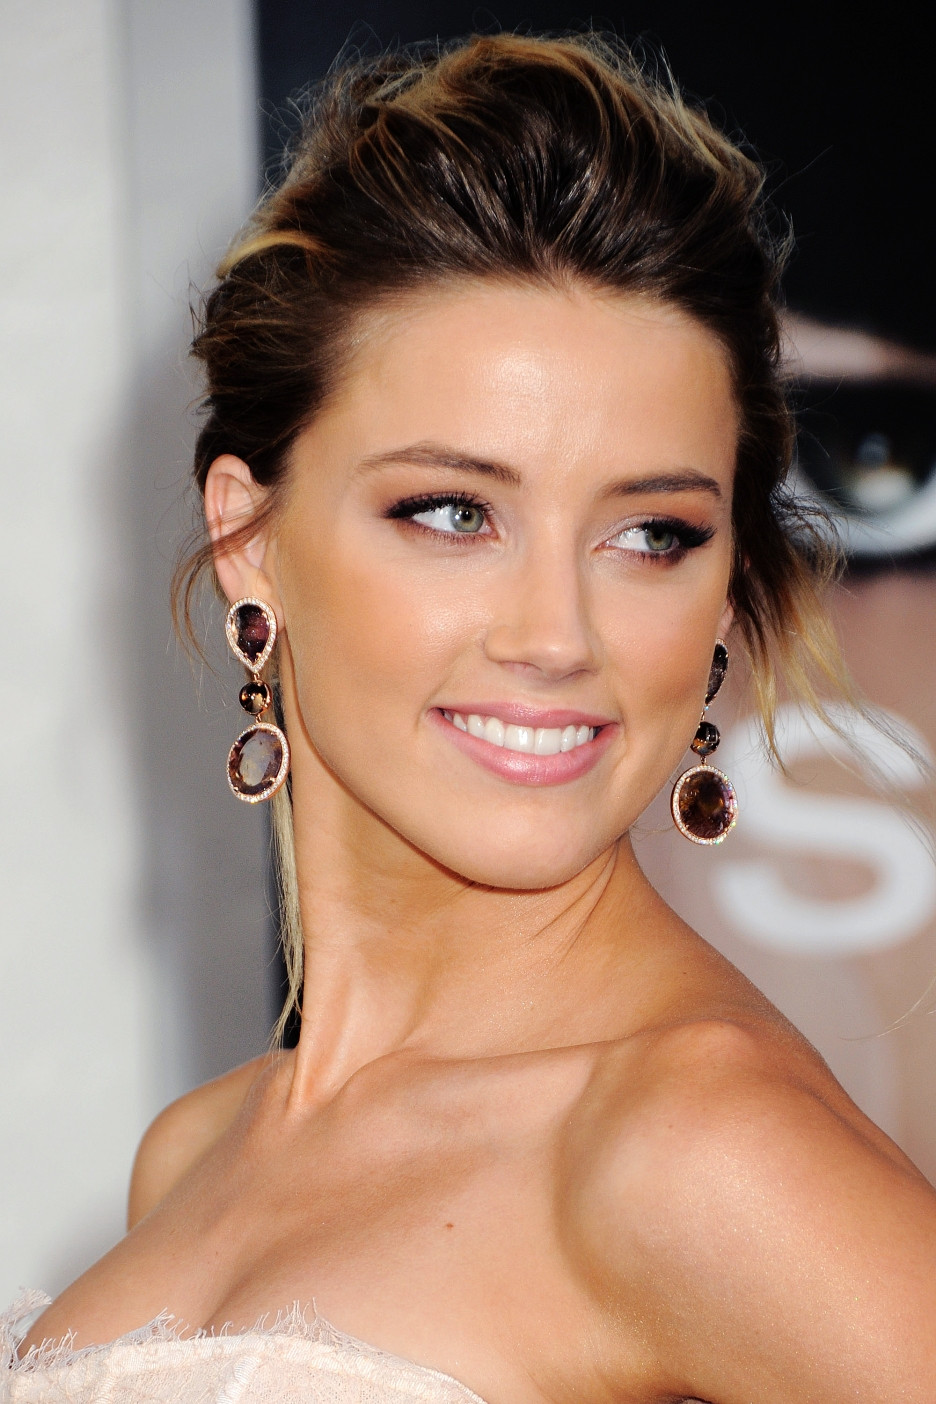 Latest Celebrity Photo... Amber Heard